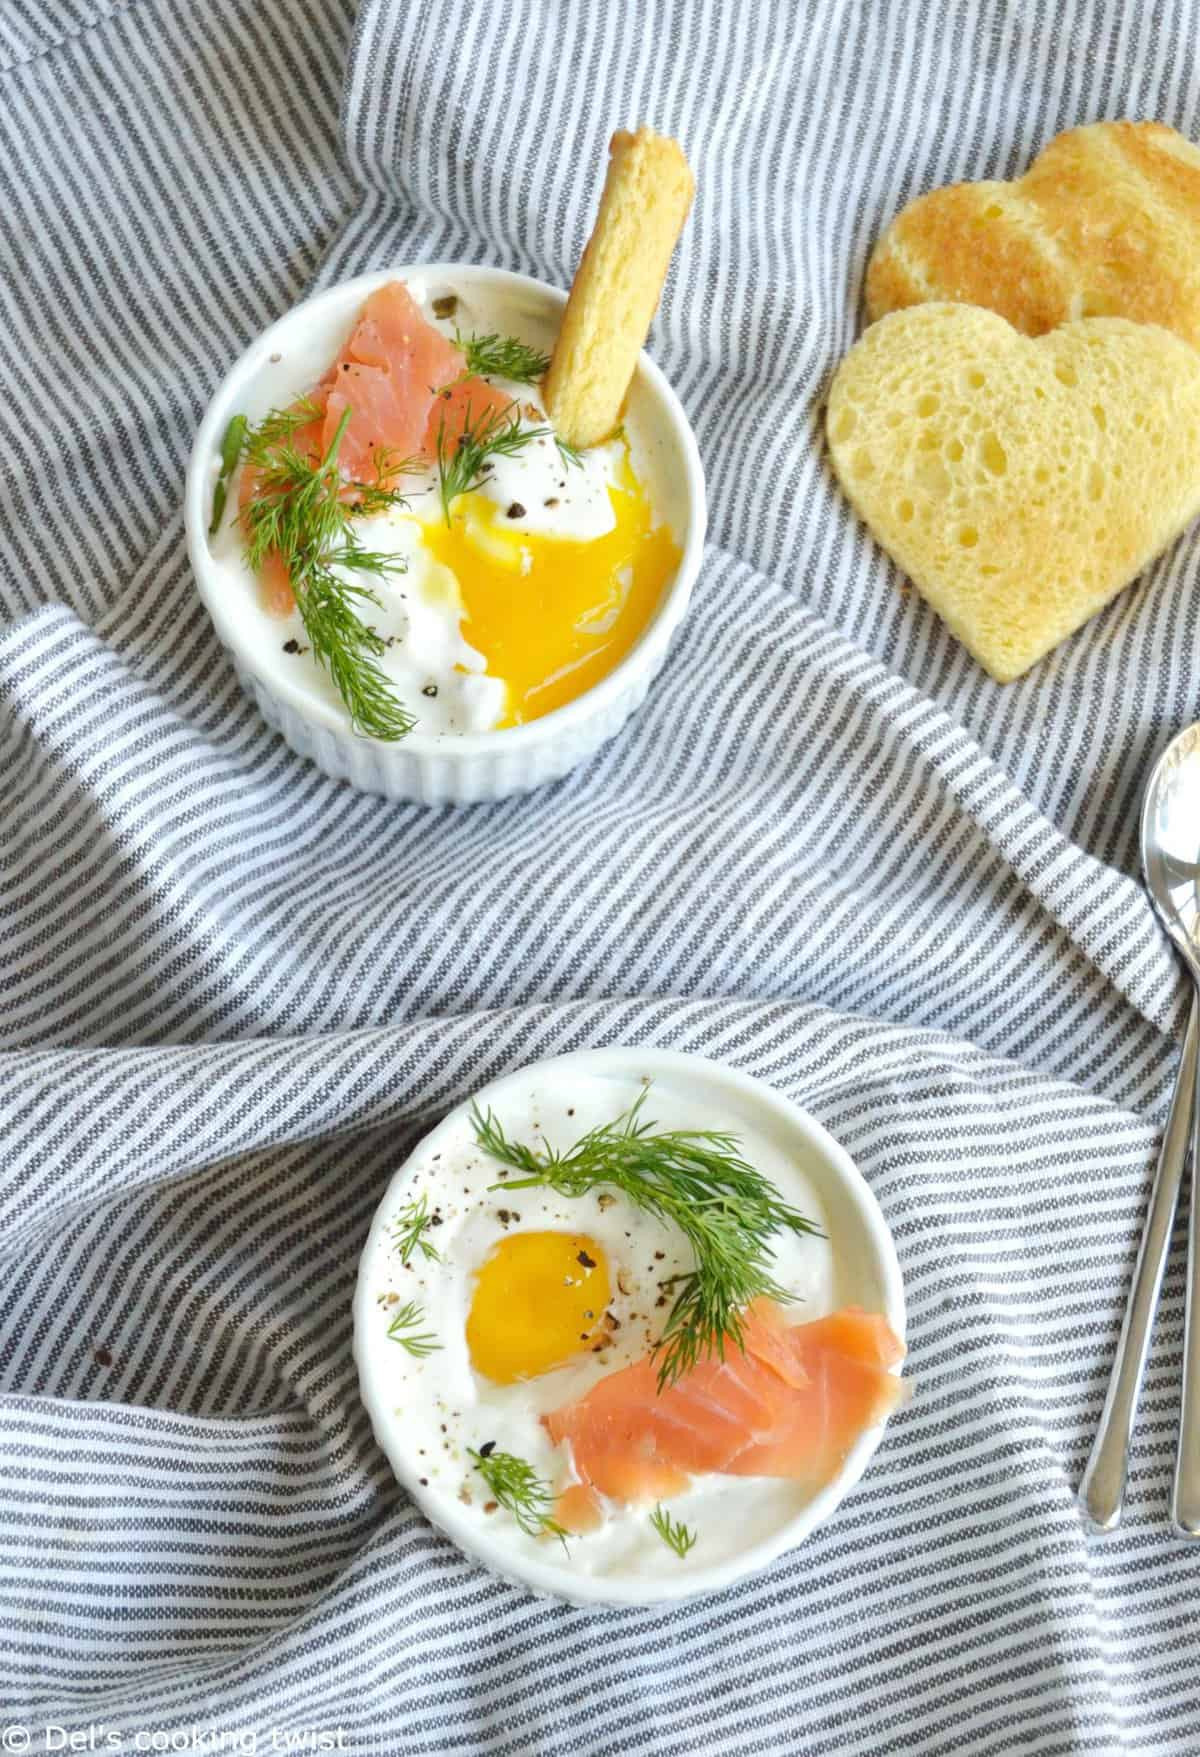 Creamy Baked Eggs with Smoked Salmon